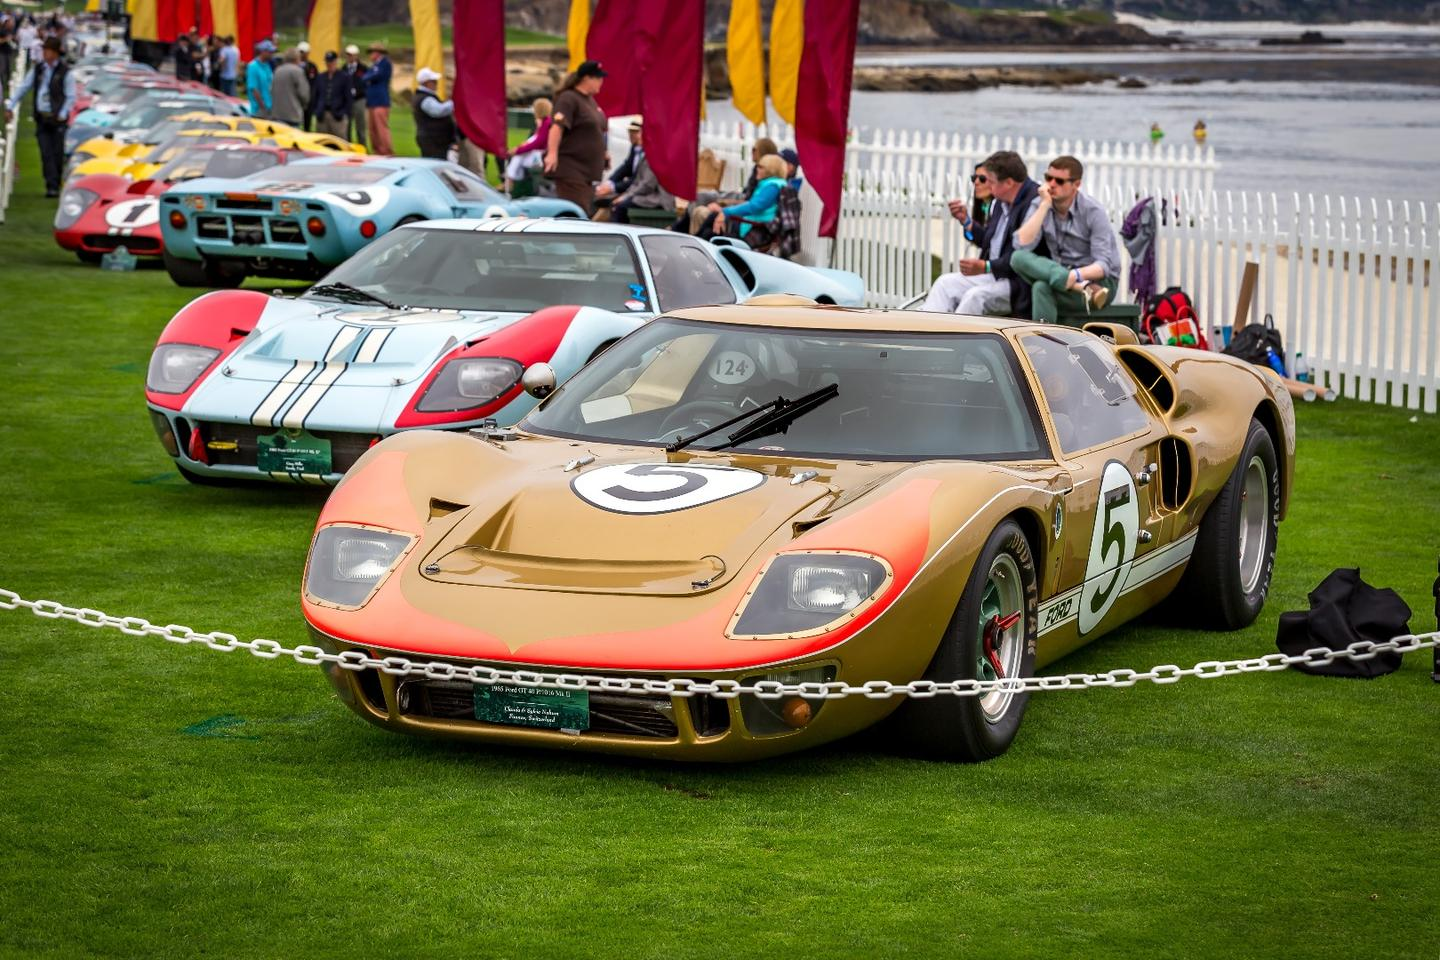 19 legendary Ford GT40s graced the lawn at the 2016 Pebble Beach Concours d'Elegance